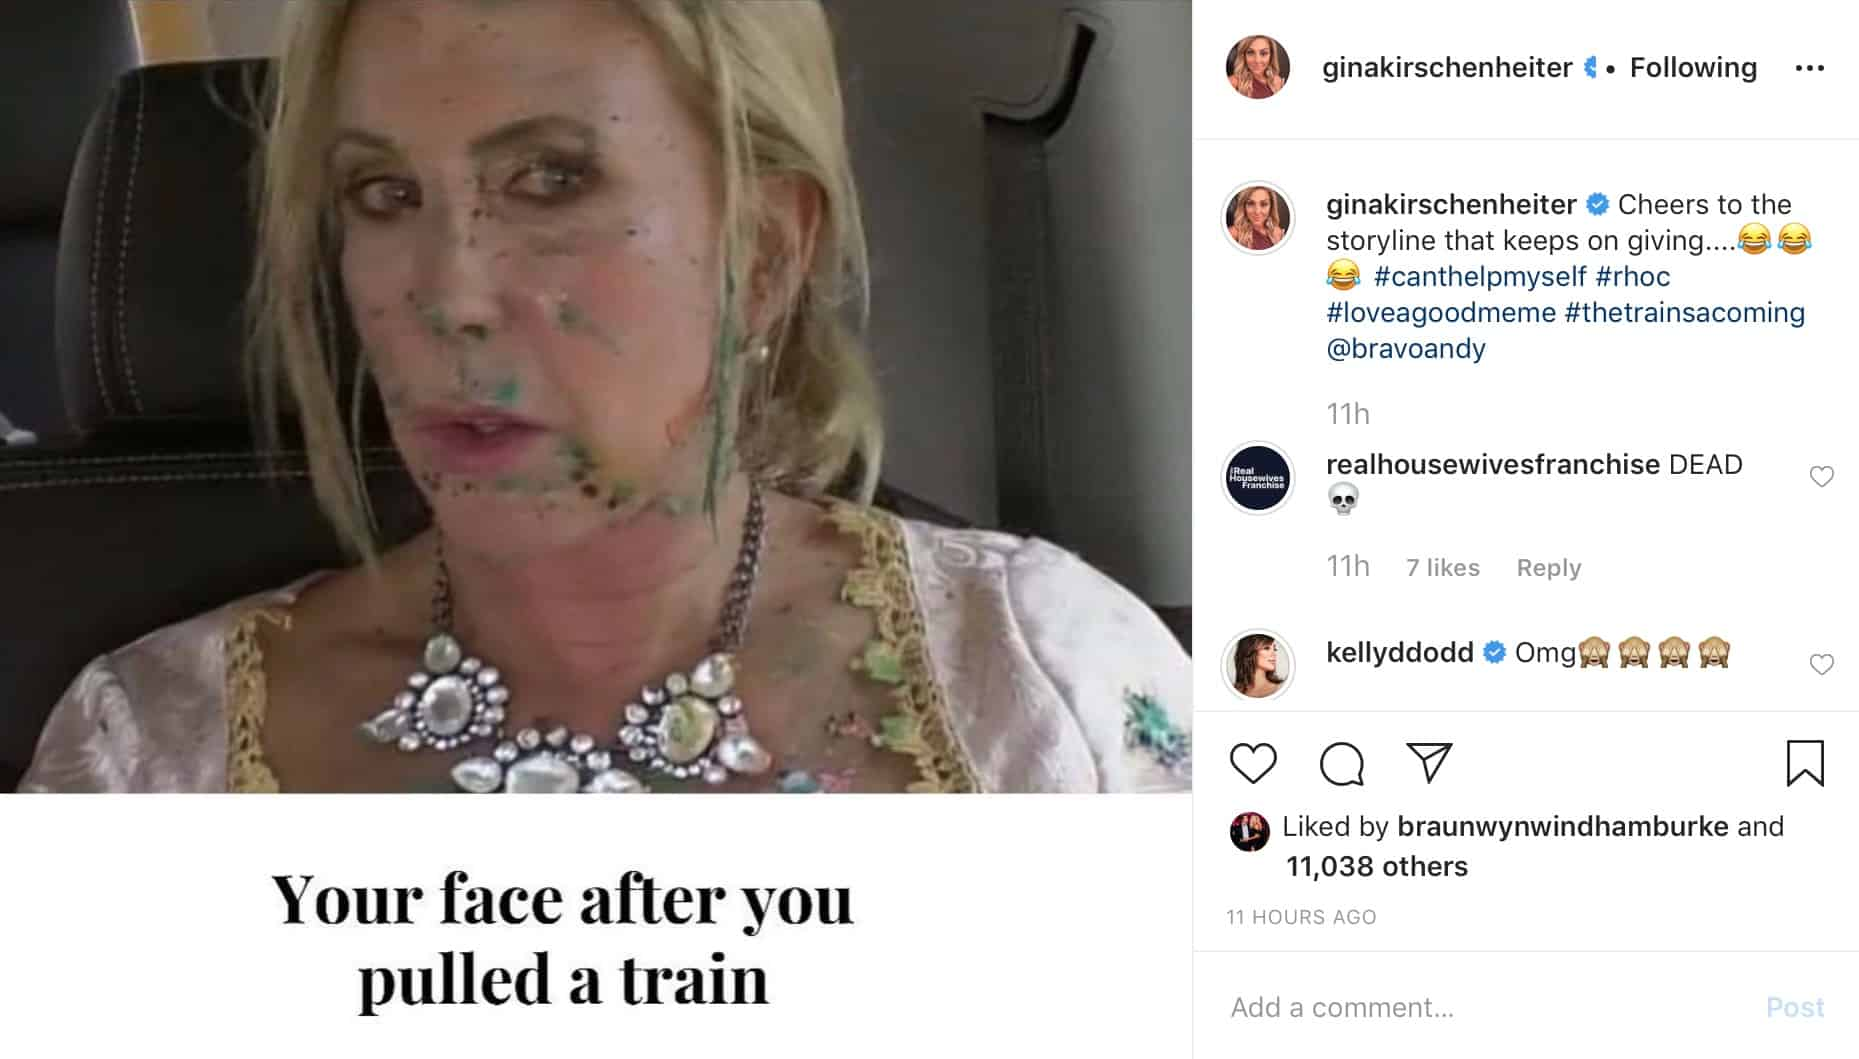 RHOC Gina Kirschenheiter Shares Photo of Vicki Gunvalson and Mentions a Train